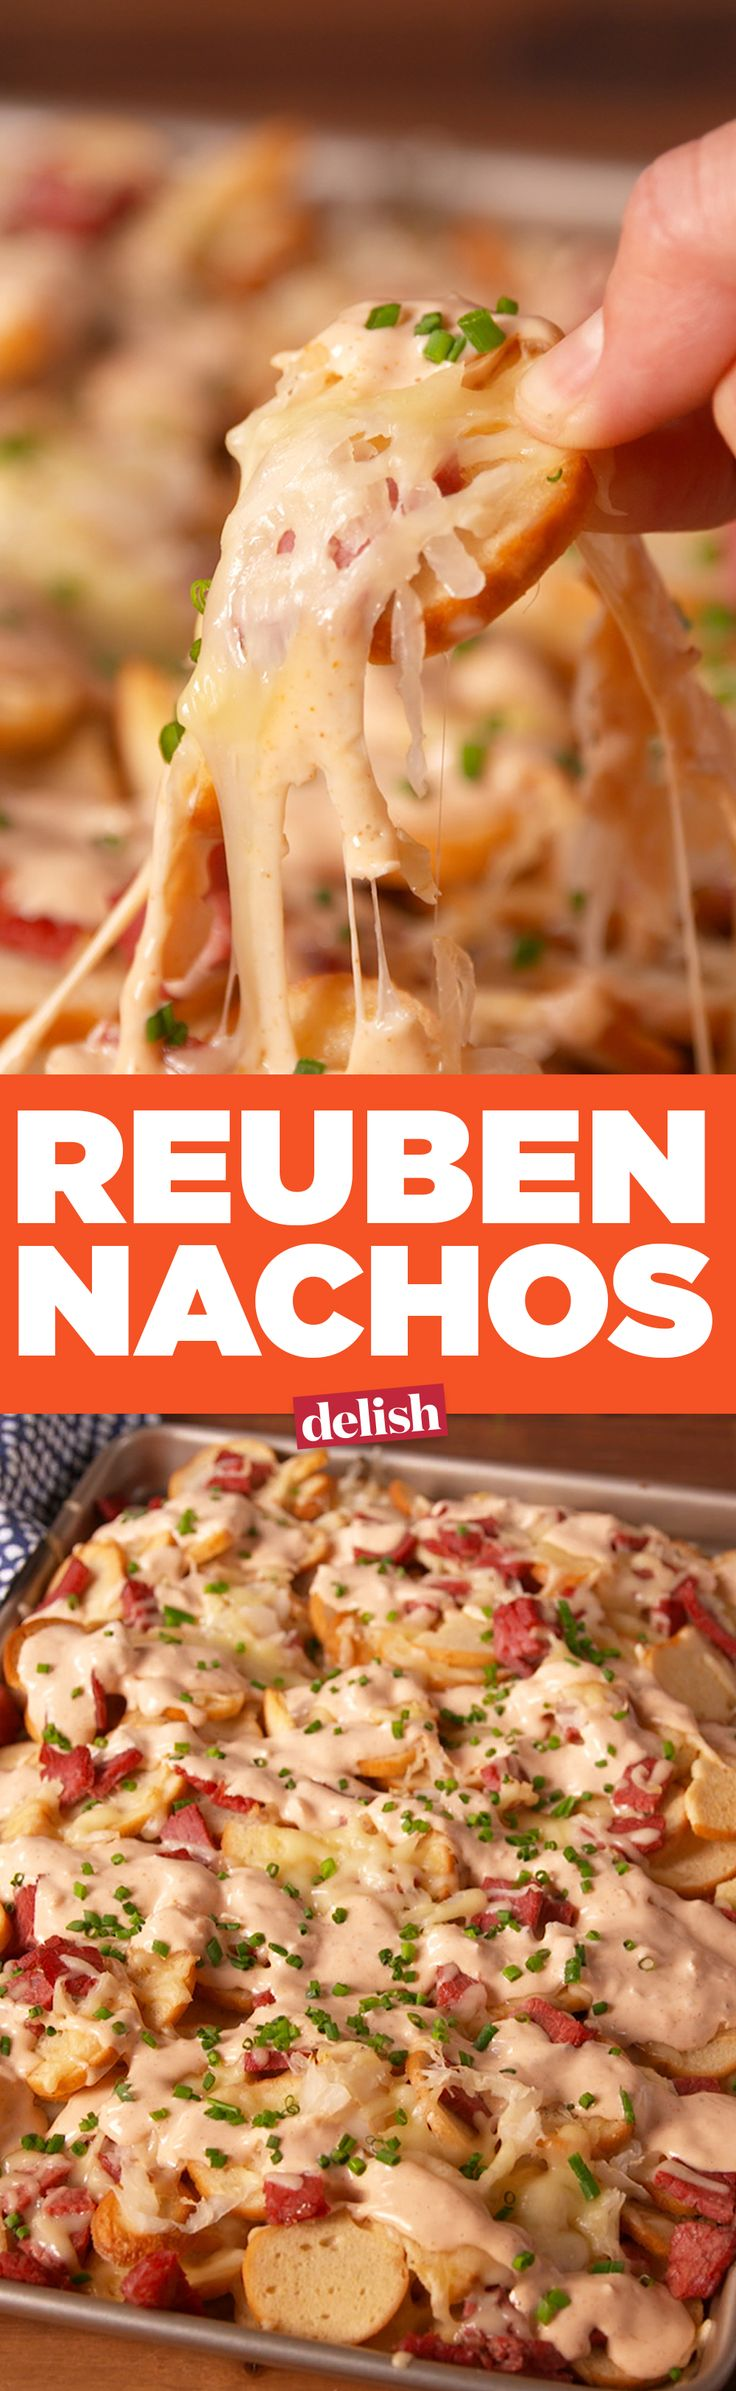 Forget sandwiches—make Reuben Nachos. Get the recipe on Delish.com.